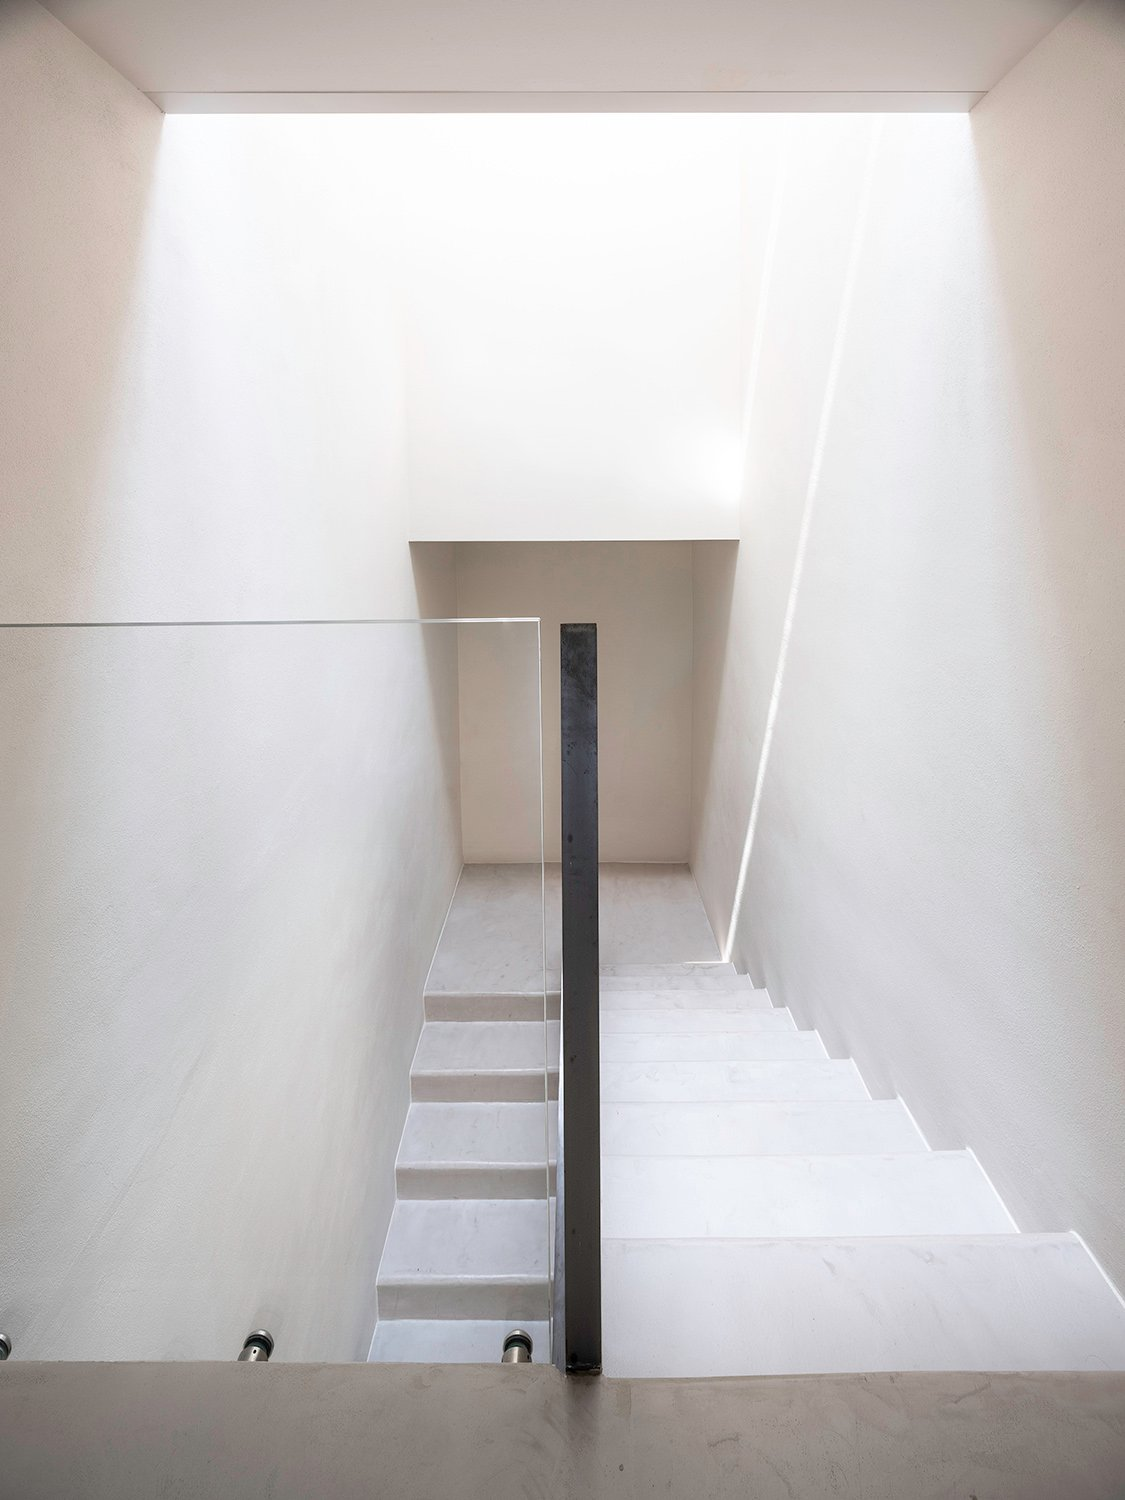 Second Floor - Concrete Stairs Filippo Poli Photography